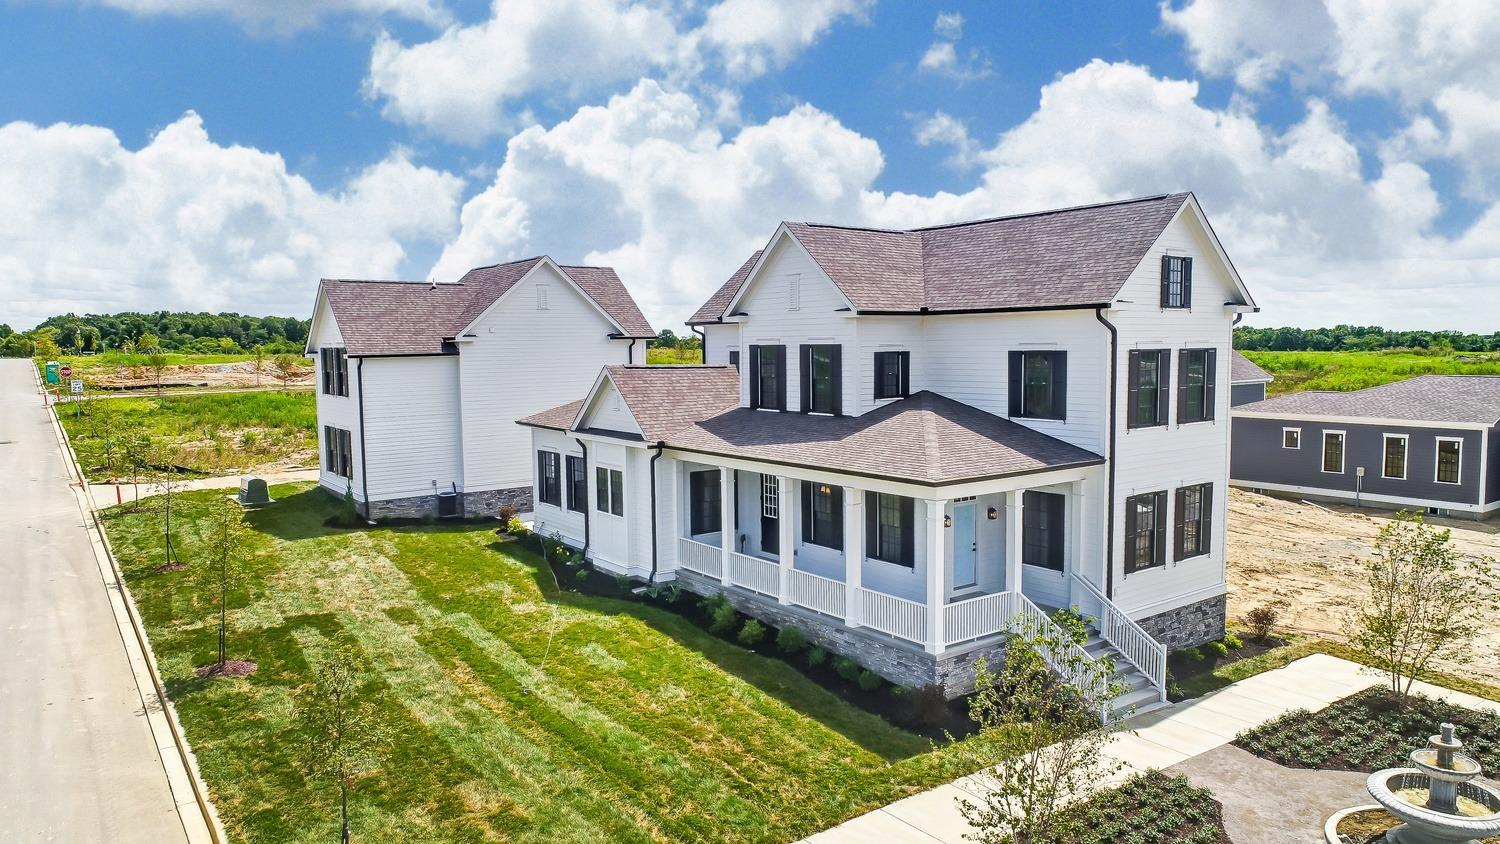 3801 Anderson St Turtle Creek Twp OH